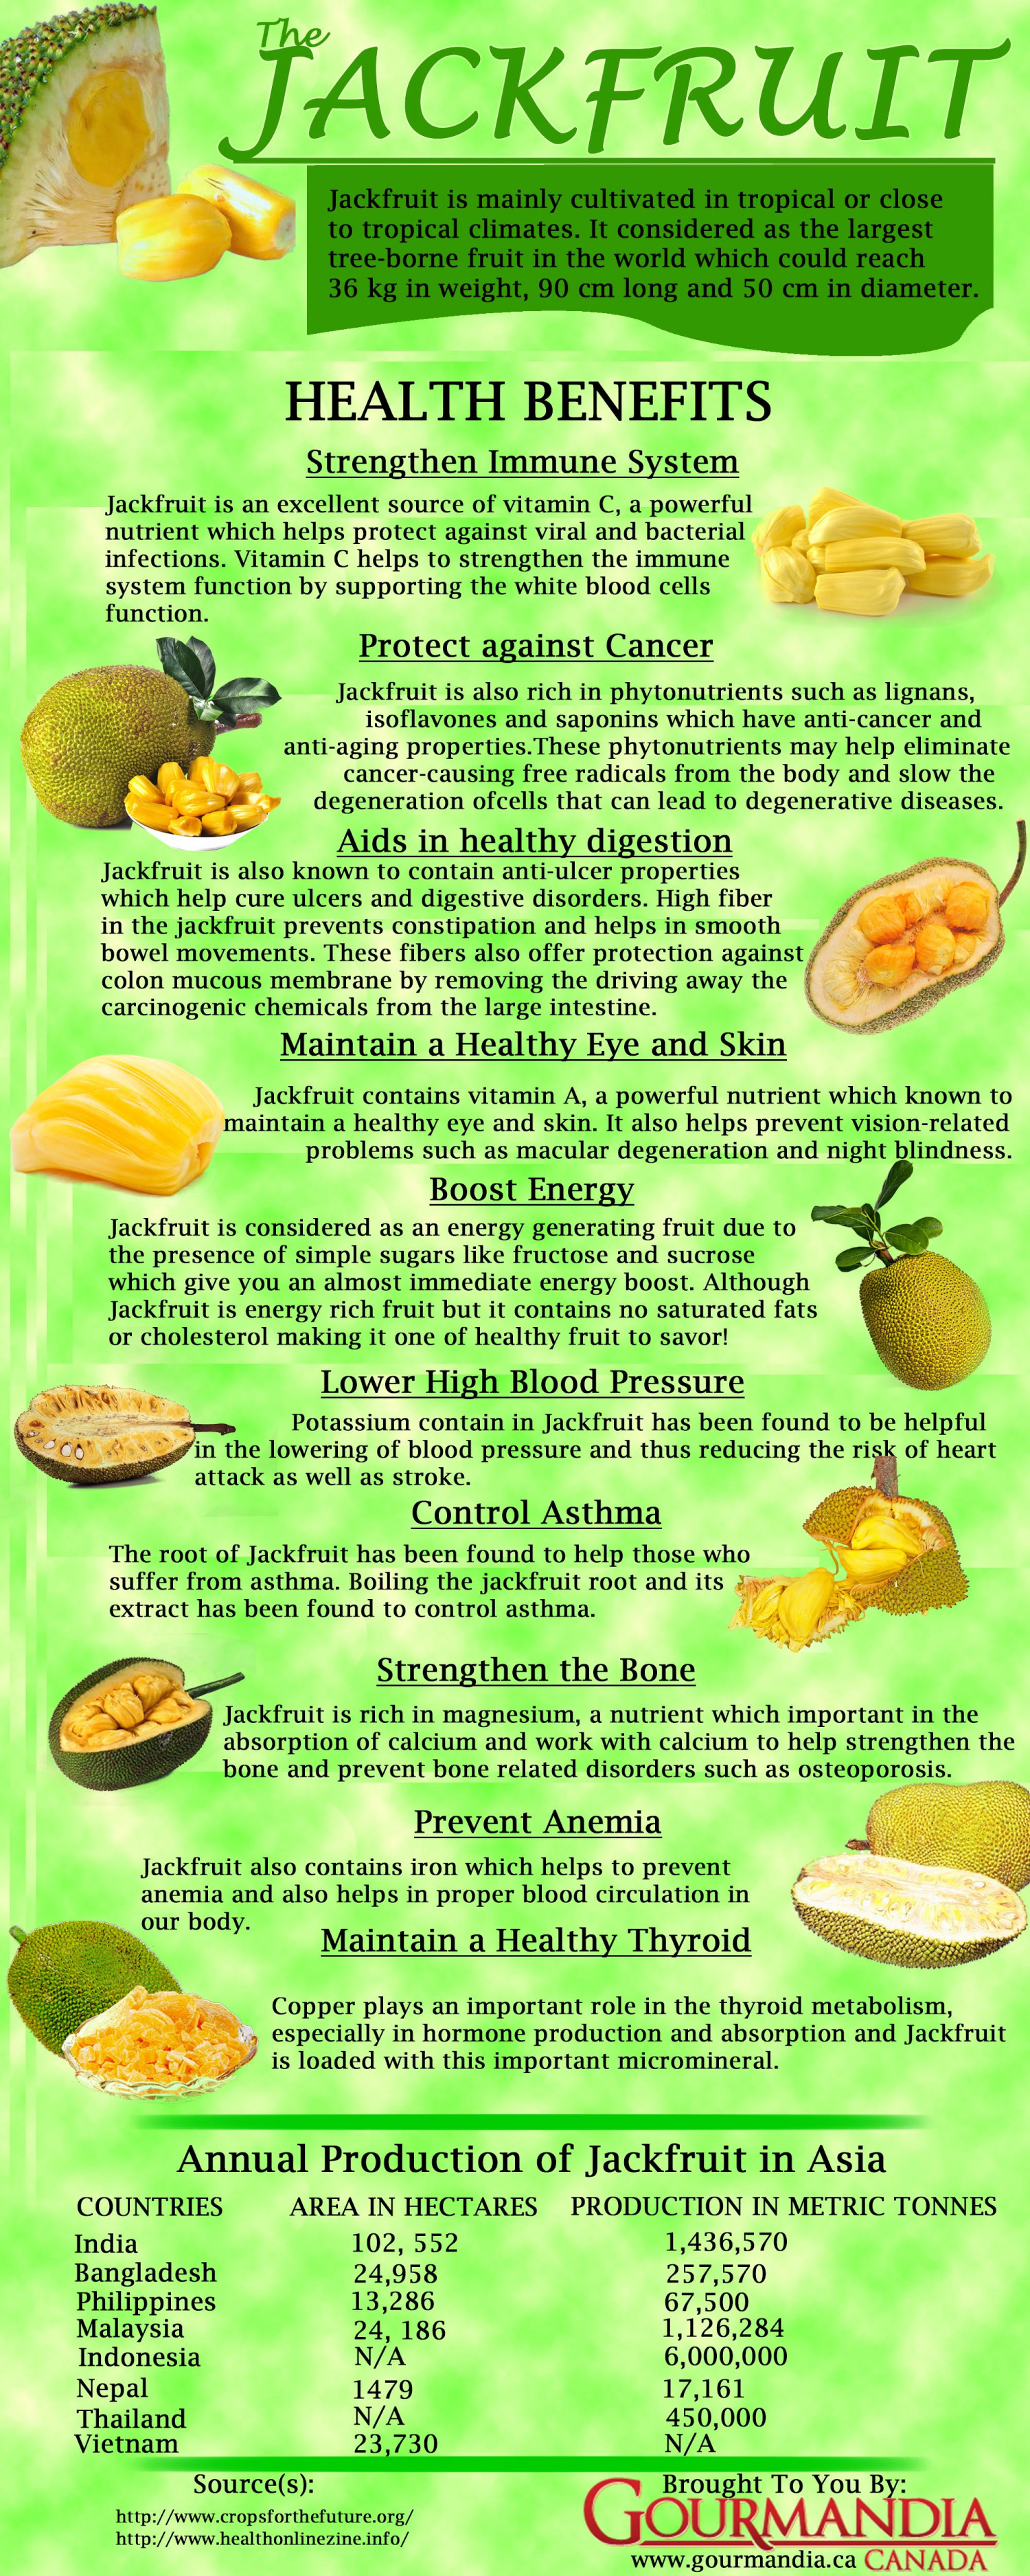 The Jackfruit Infographic